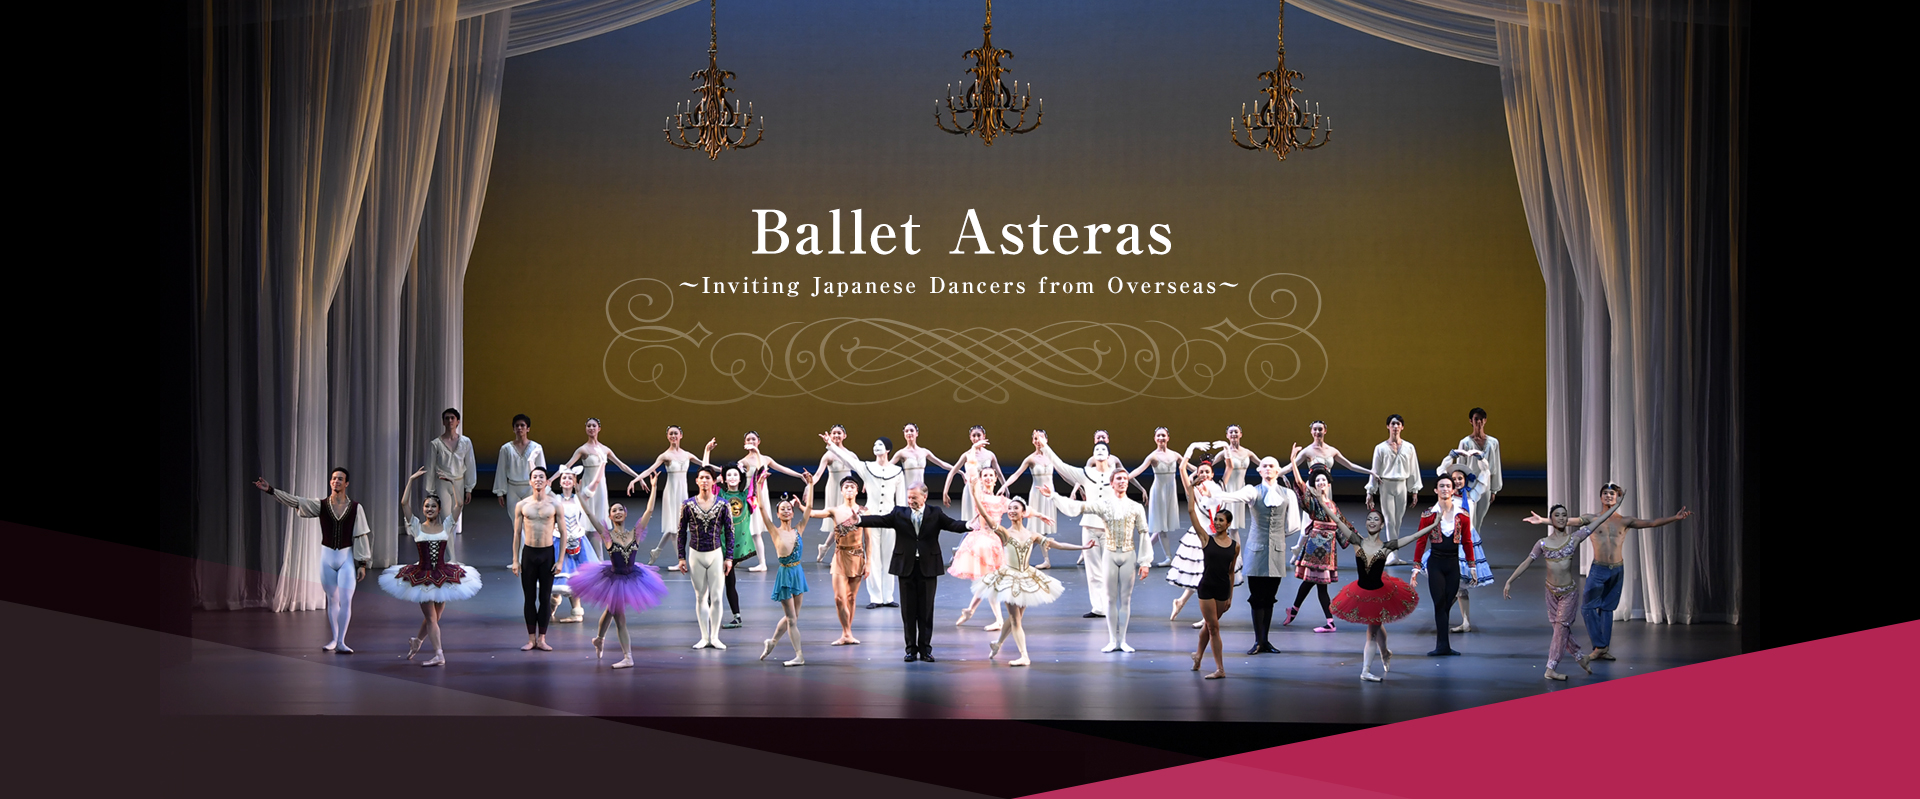 Ballet Asteras ~Inviting Japanese Dancers form Overseas~